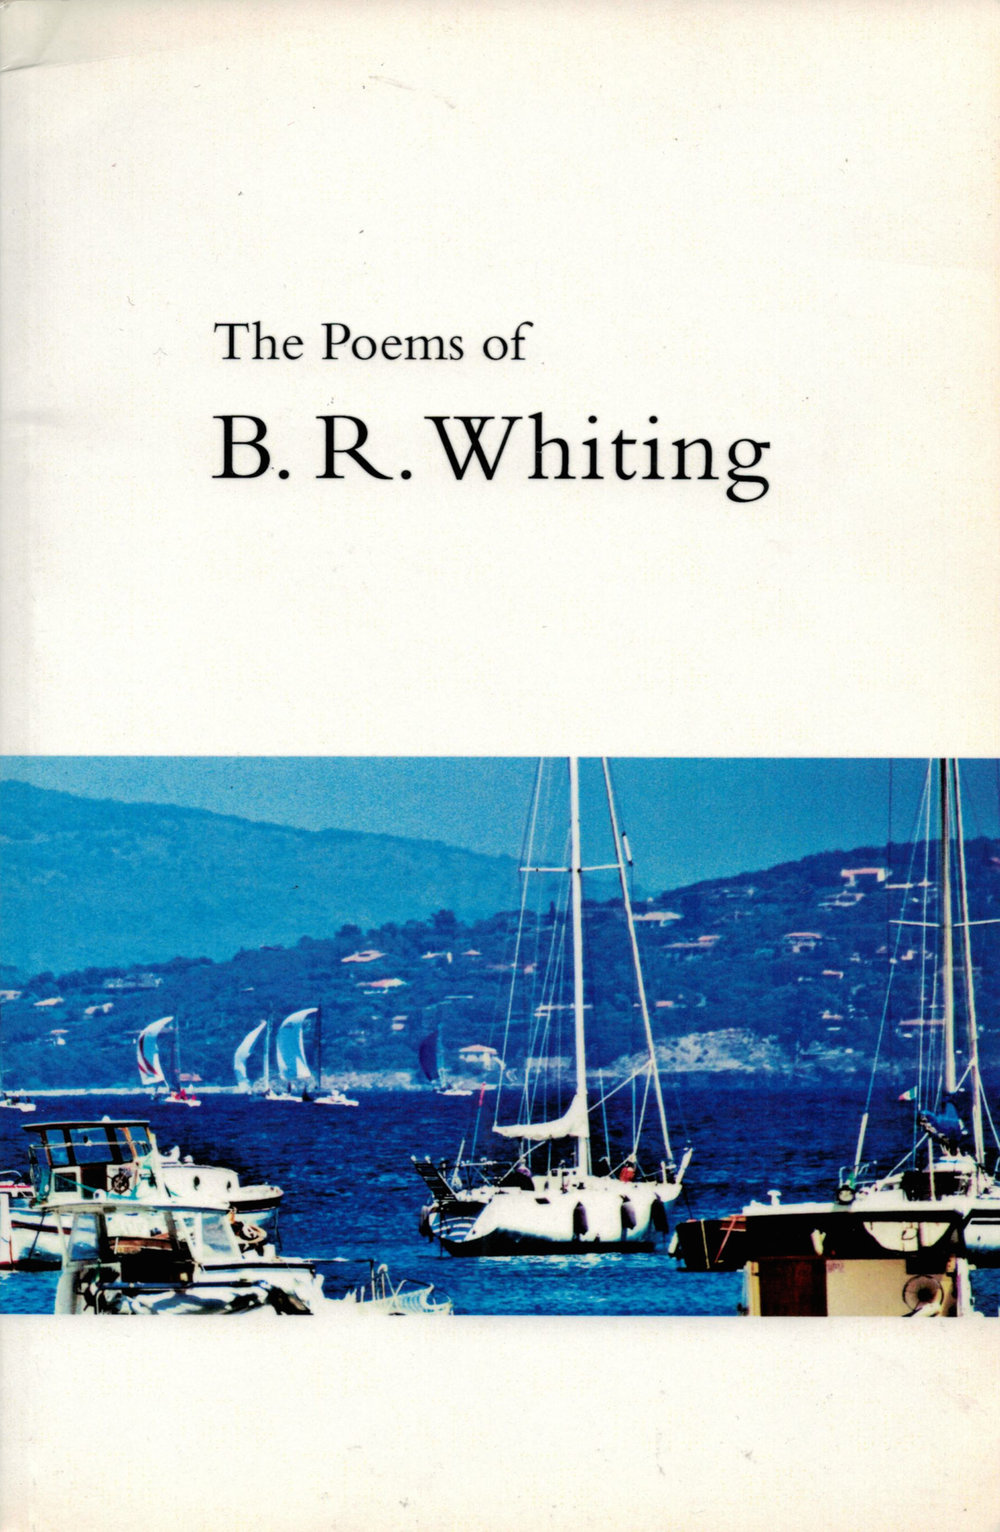 The poems of B. R. Whiting.jpg